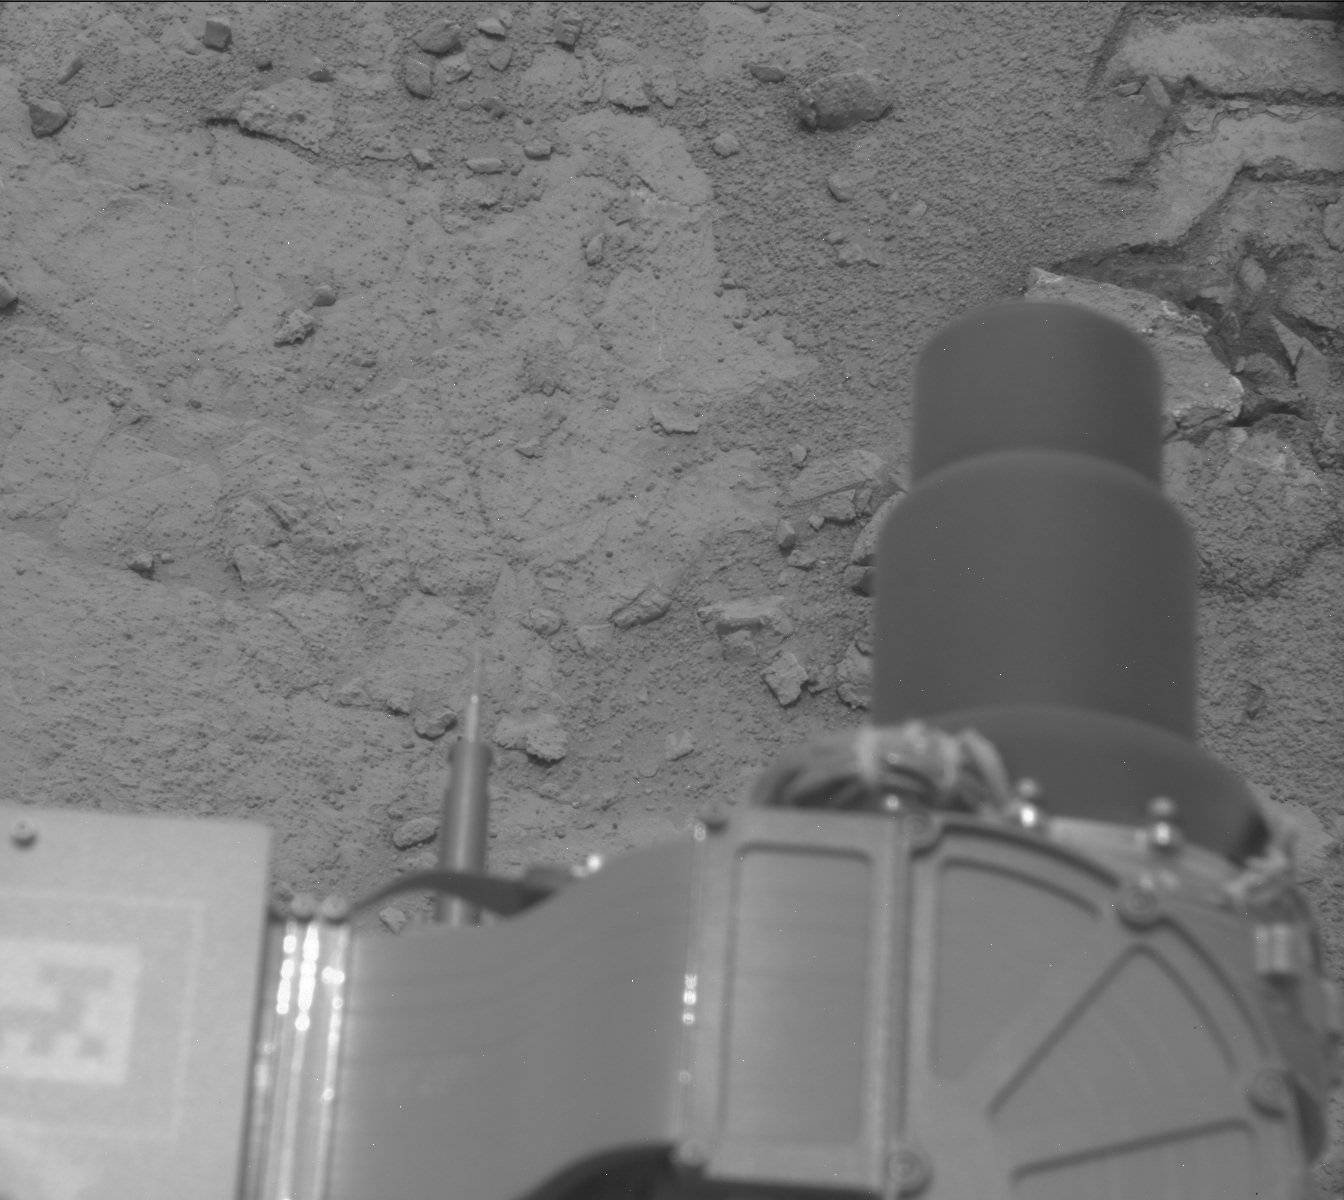 Nasa's Mars rover Curiosity acquired this image using its Mast Camera (Mastcam) on Sol 162